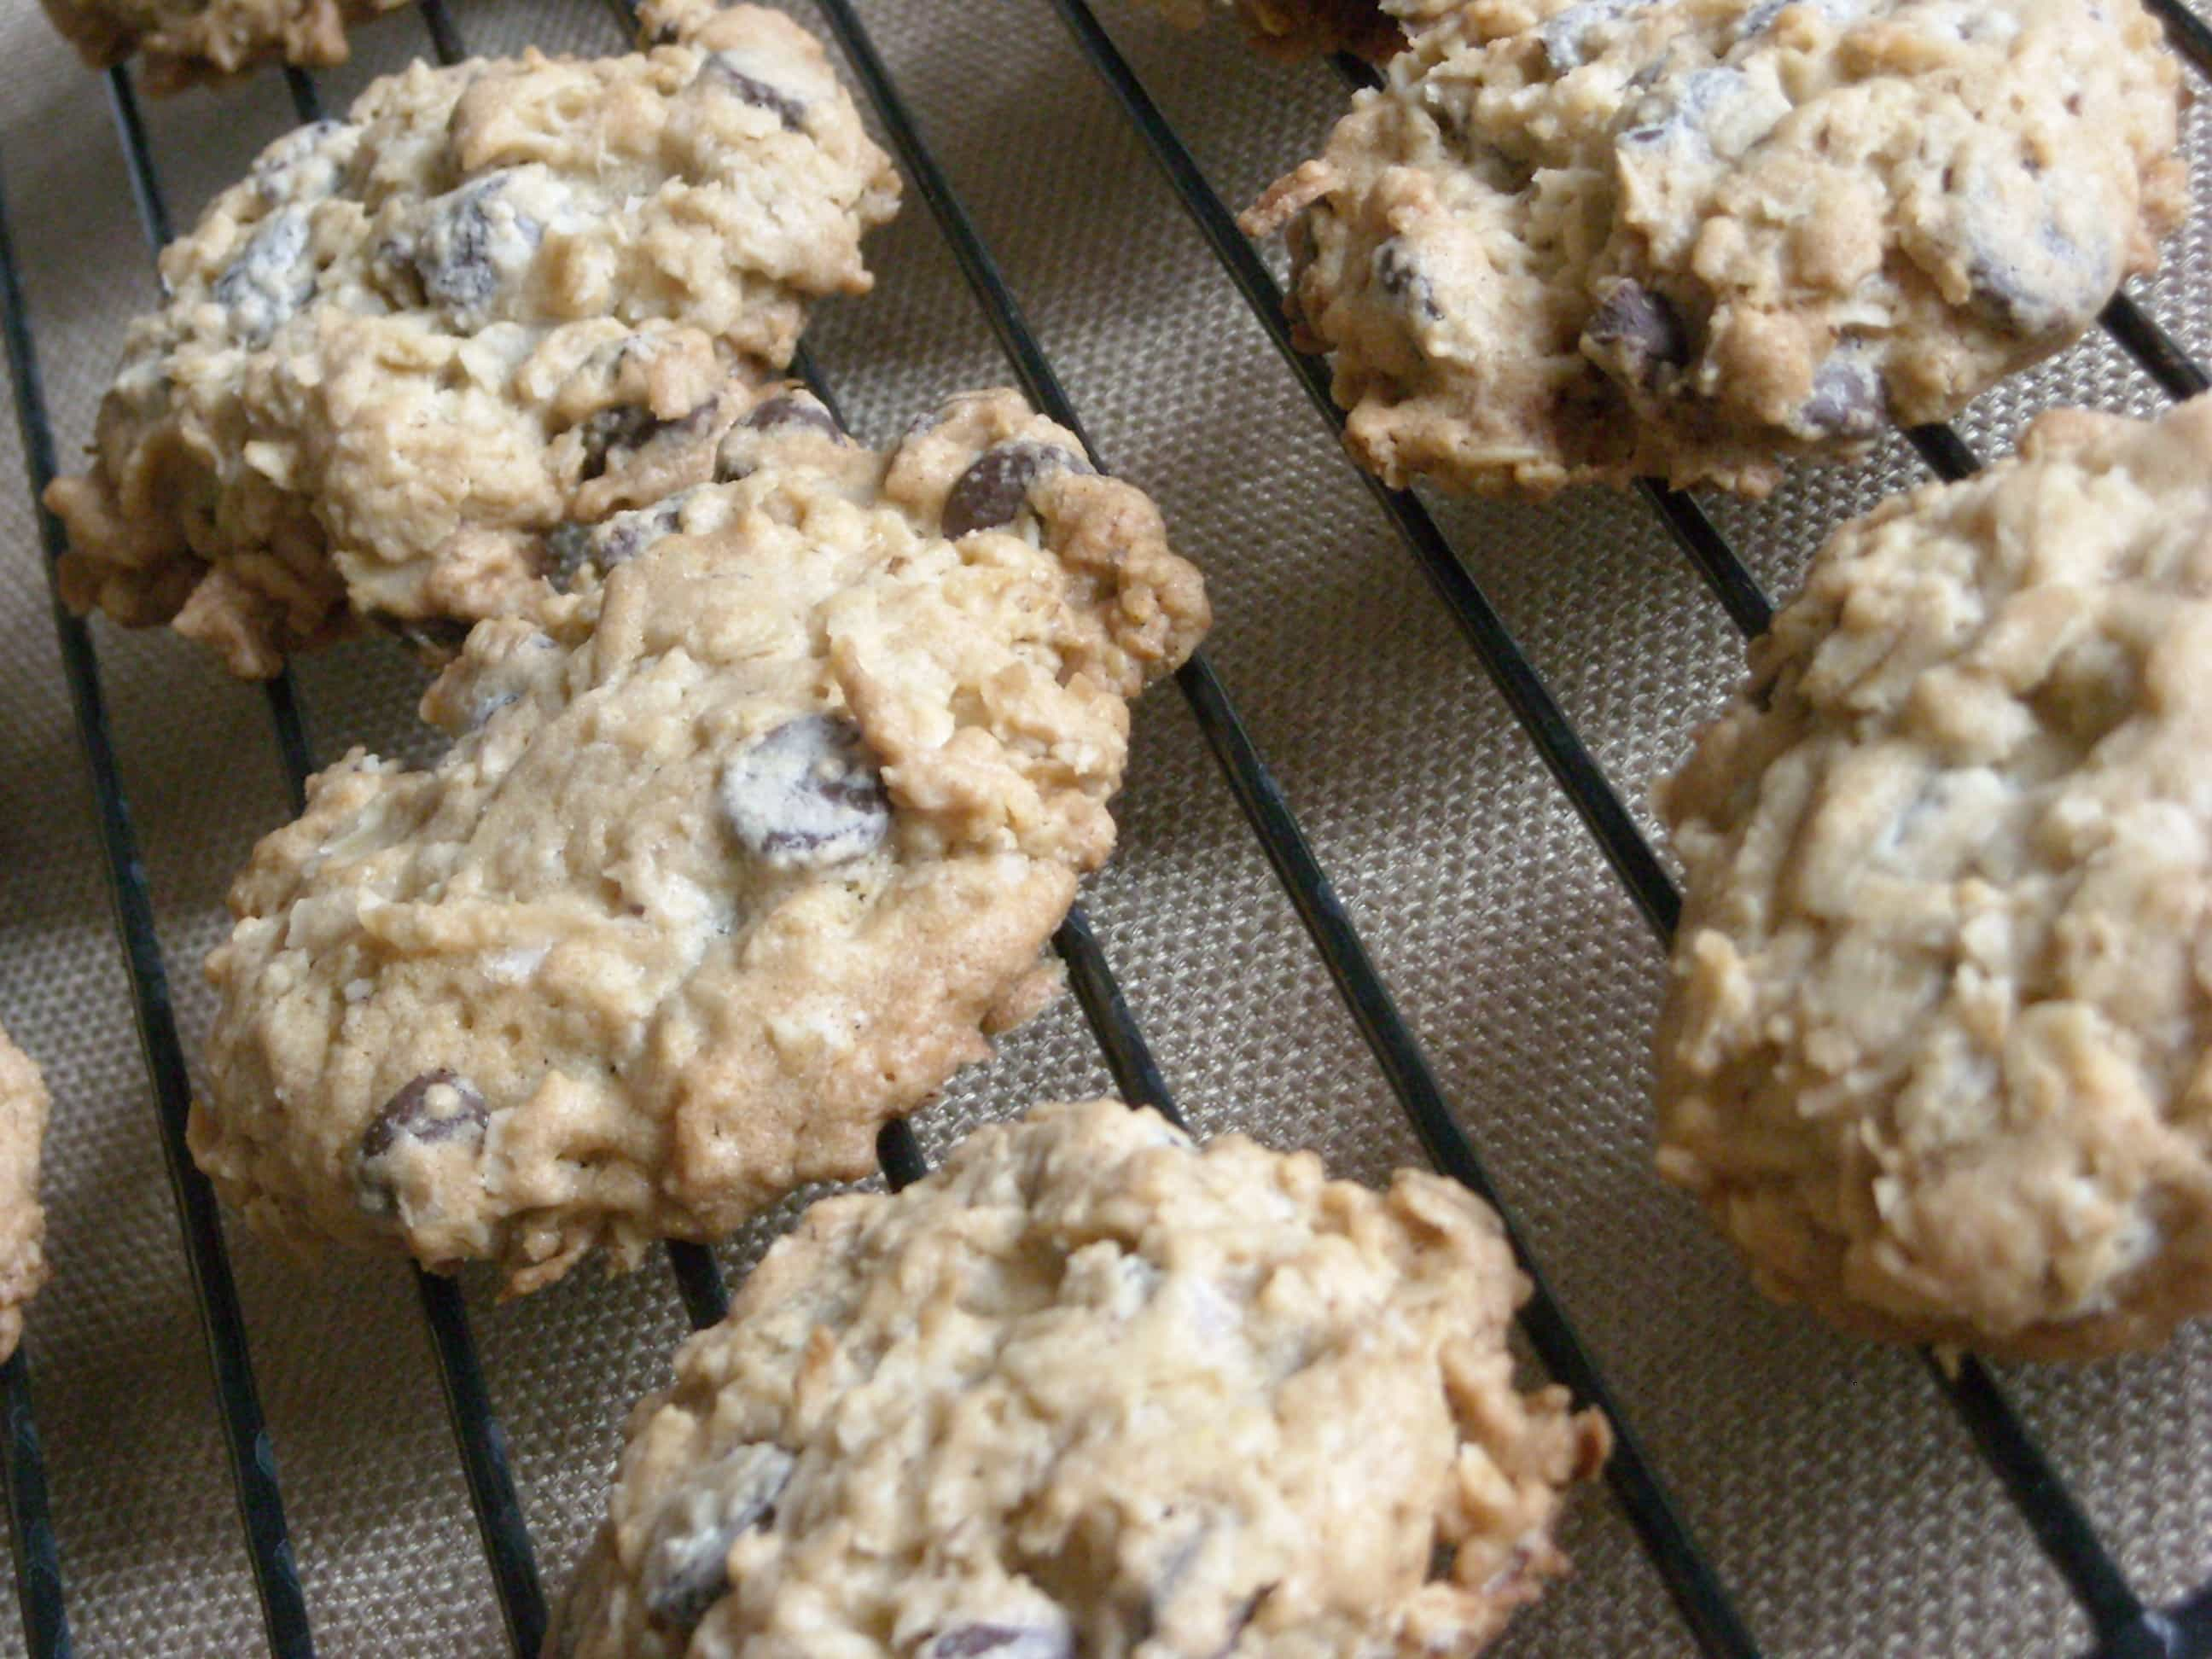 These kitchen sink cookies contain everything but the kitchen sink. Packed full of oats, chocolate chips and coconut.